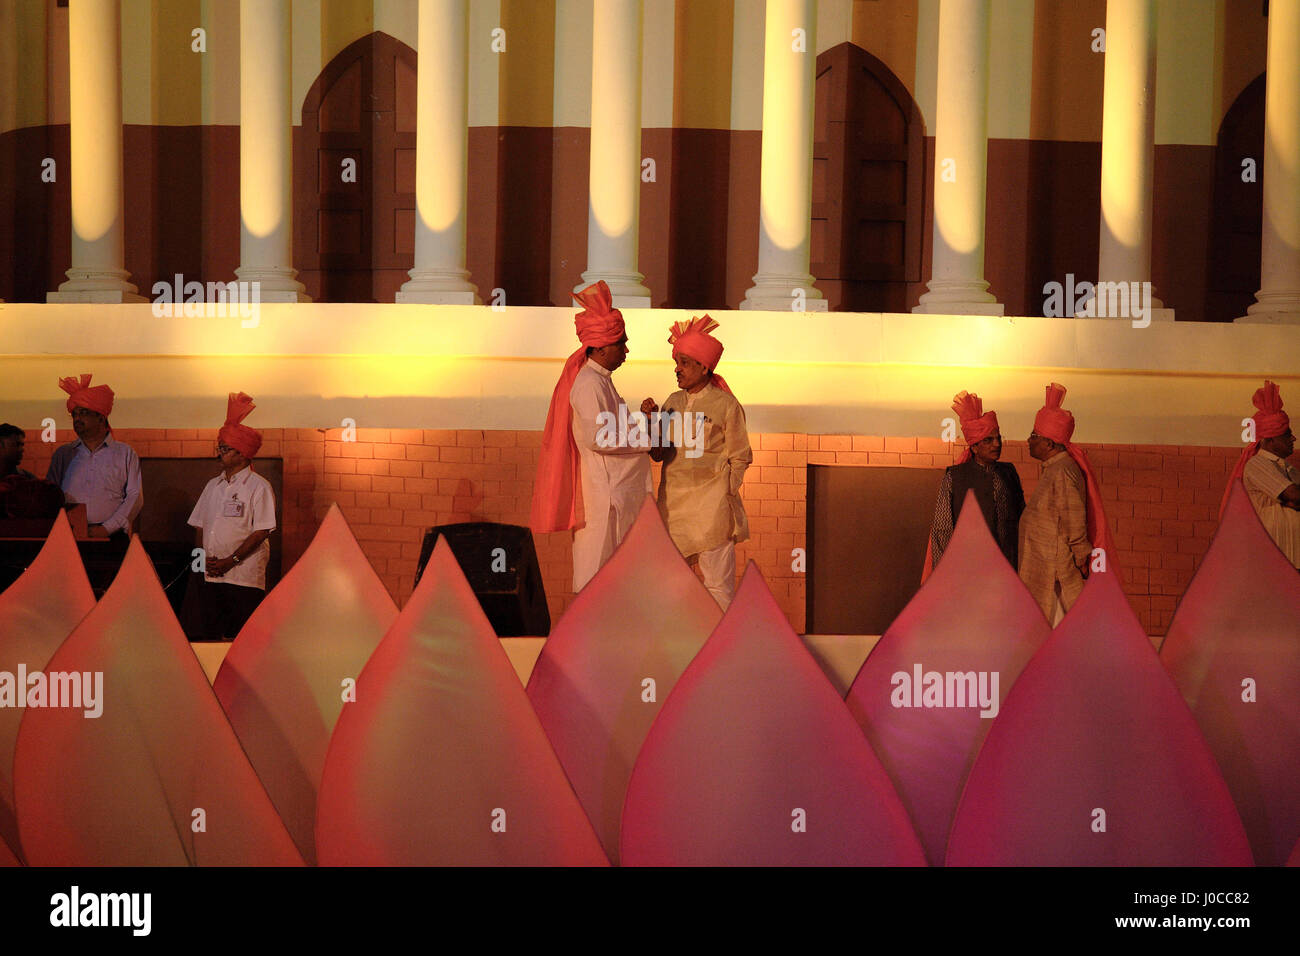 Members of bhartiya janta party public conference, mumbai, maharashtra, india, asia - Stock Image